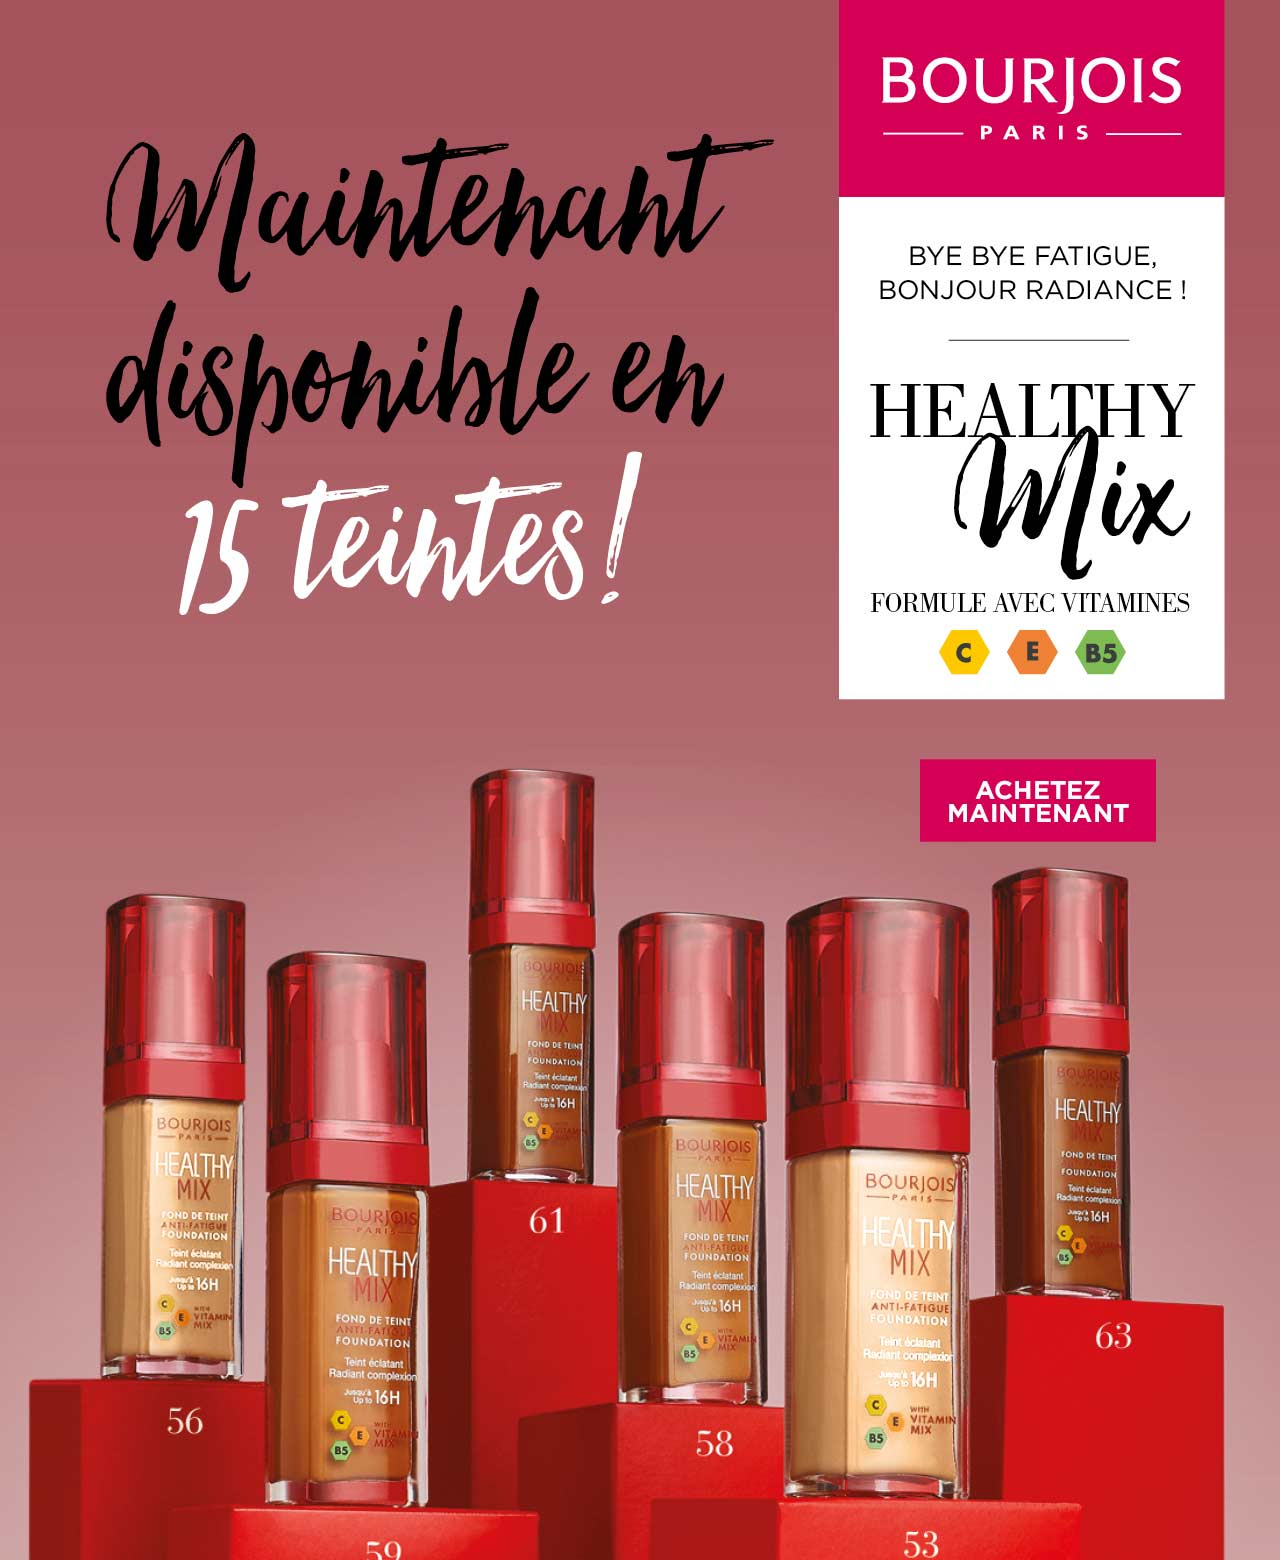 Healthy Mix achetez maintenant